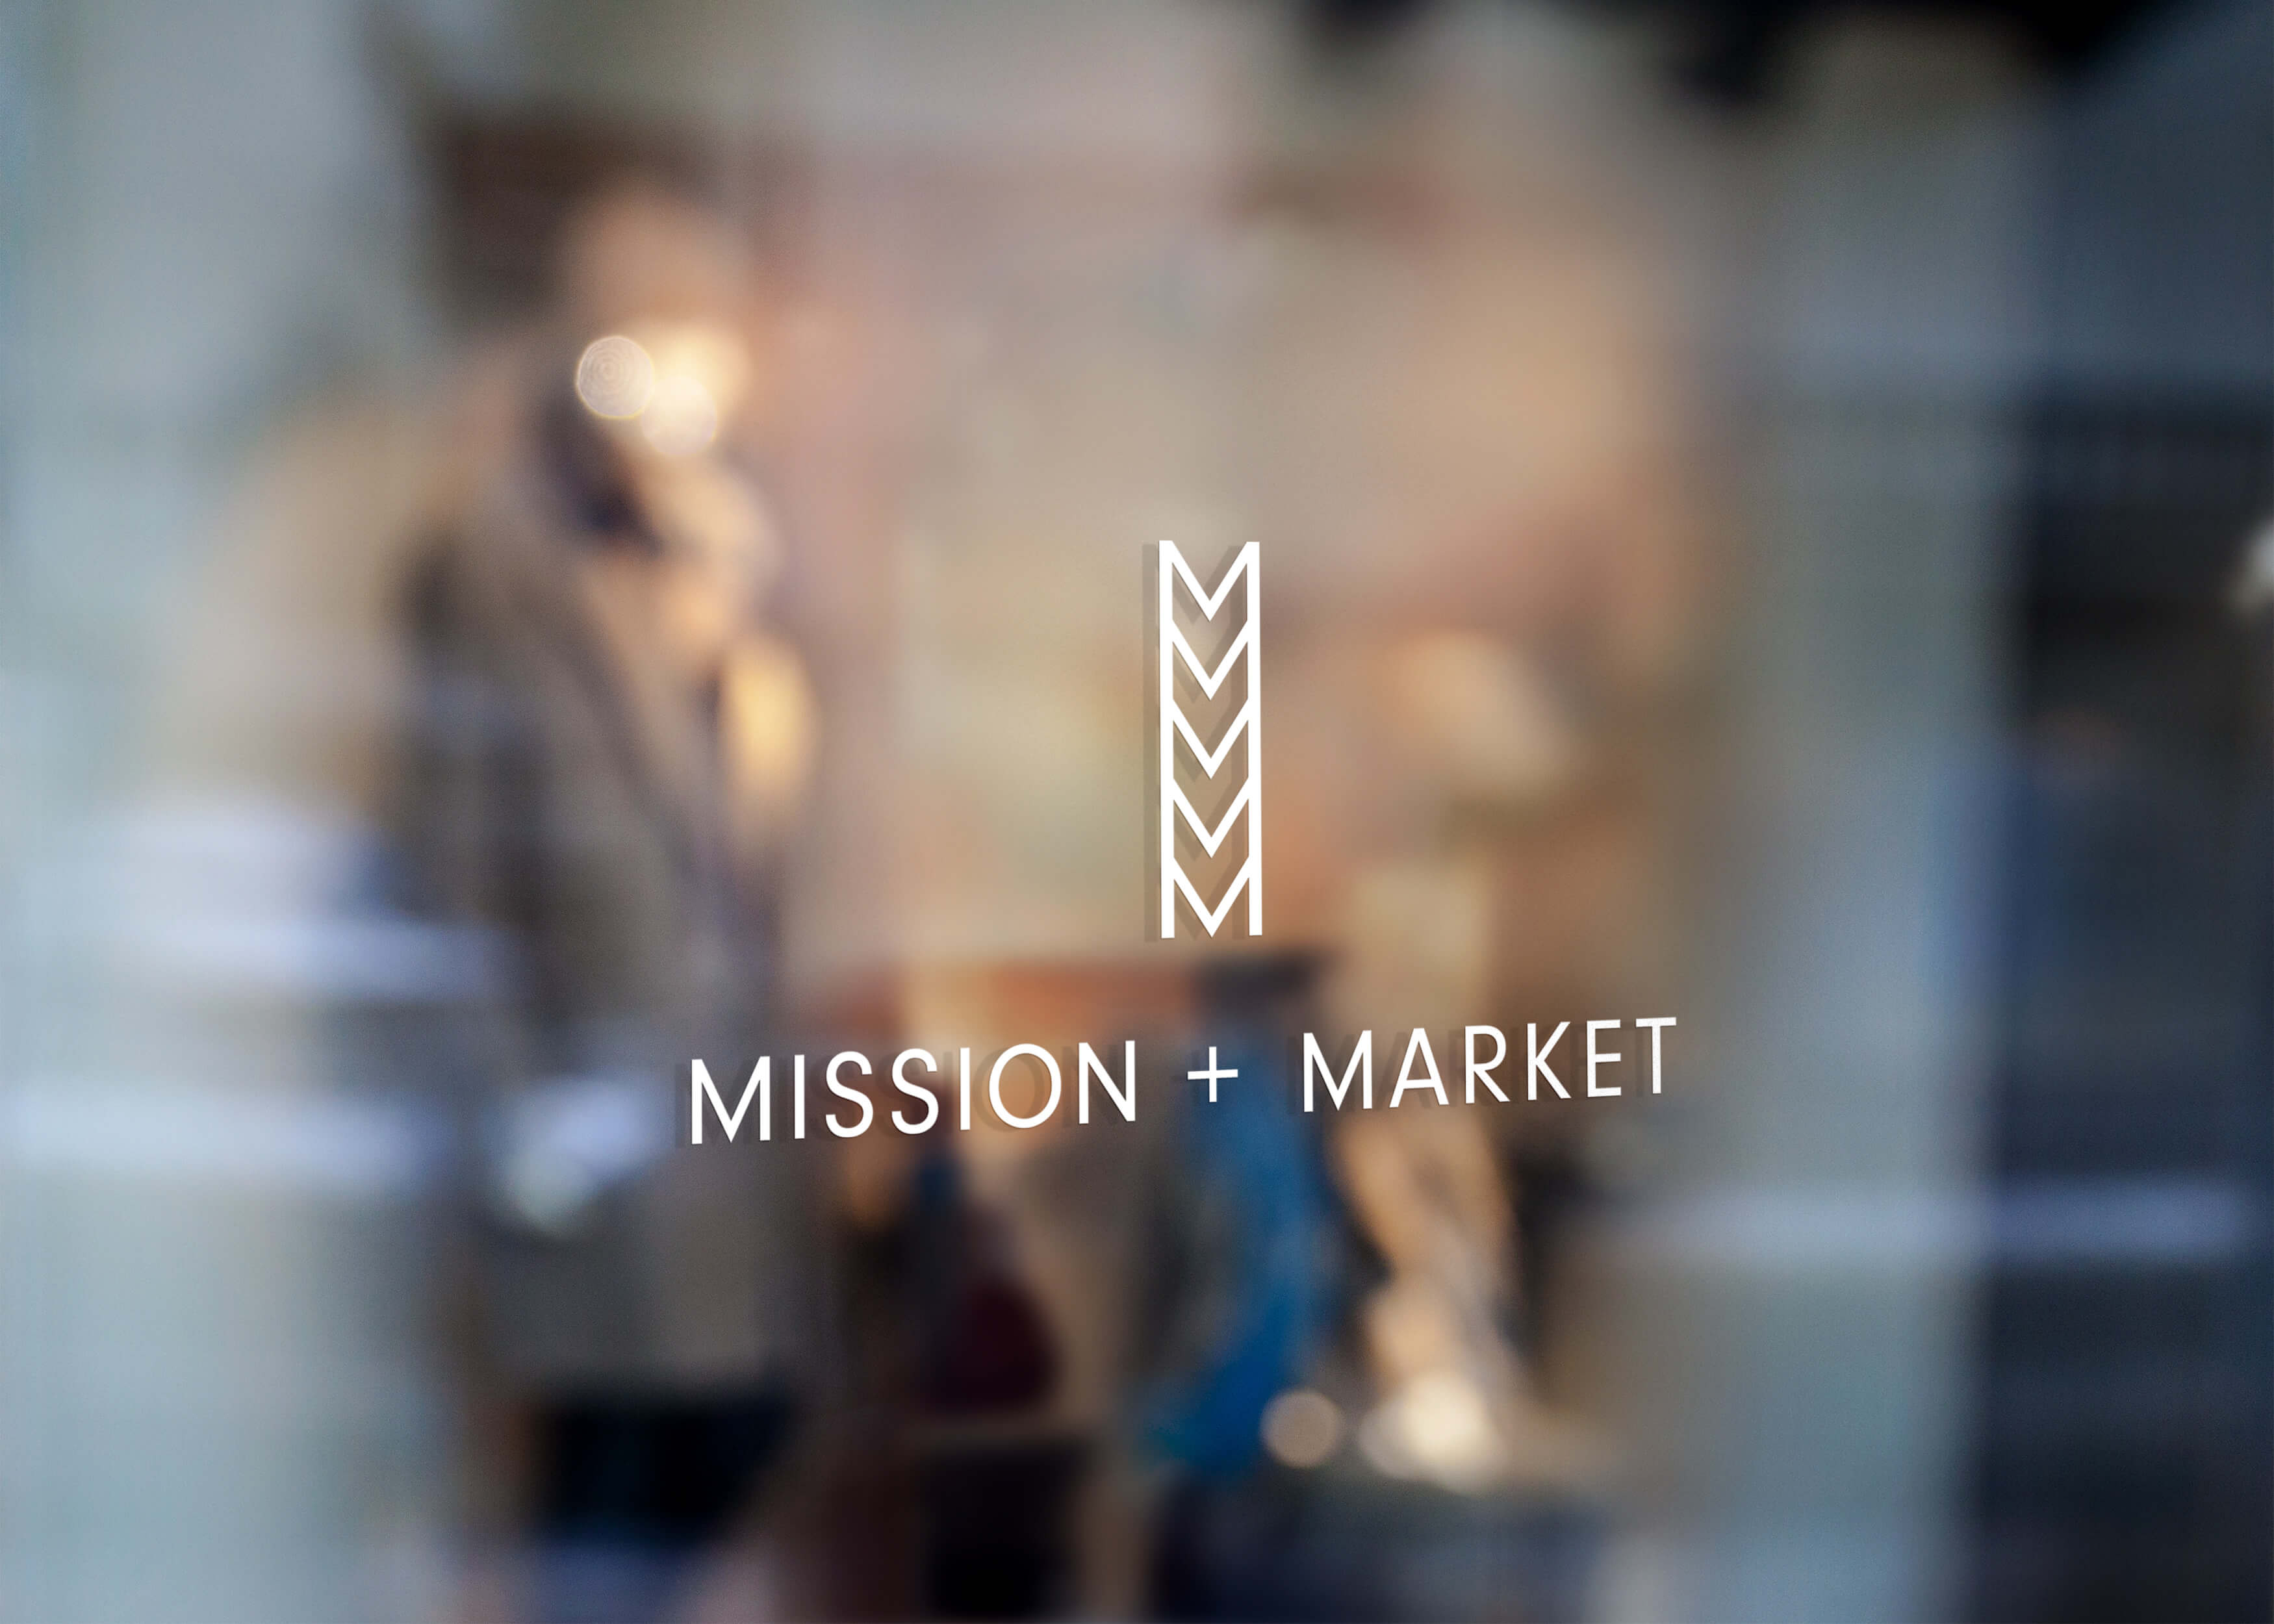 Mission + Market Window Sign Graphic